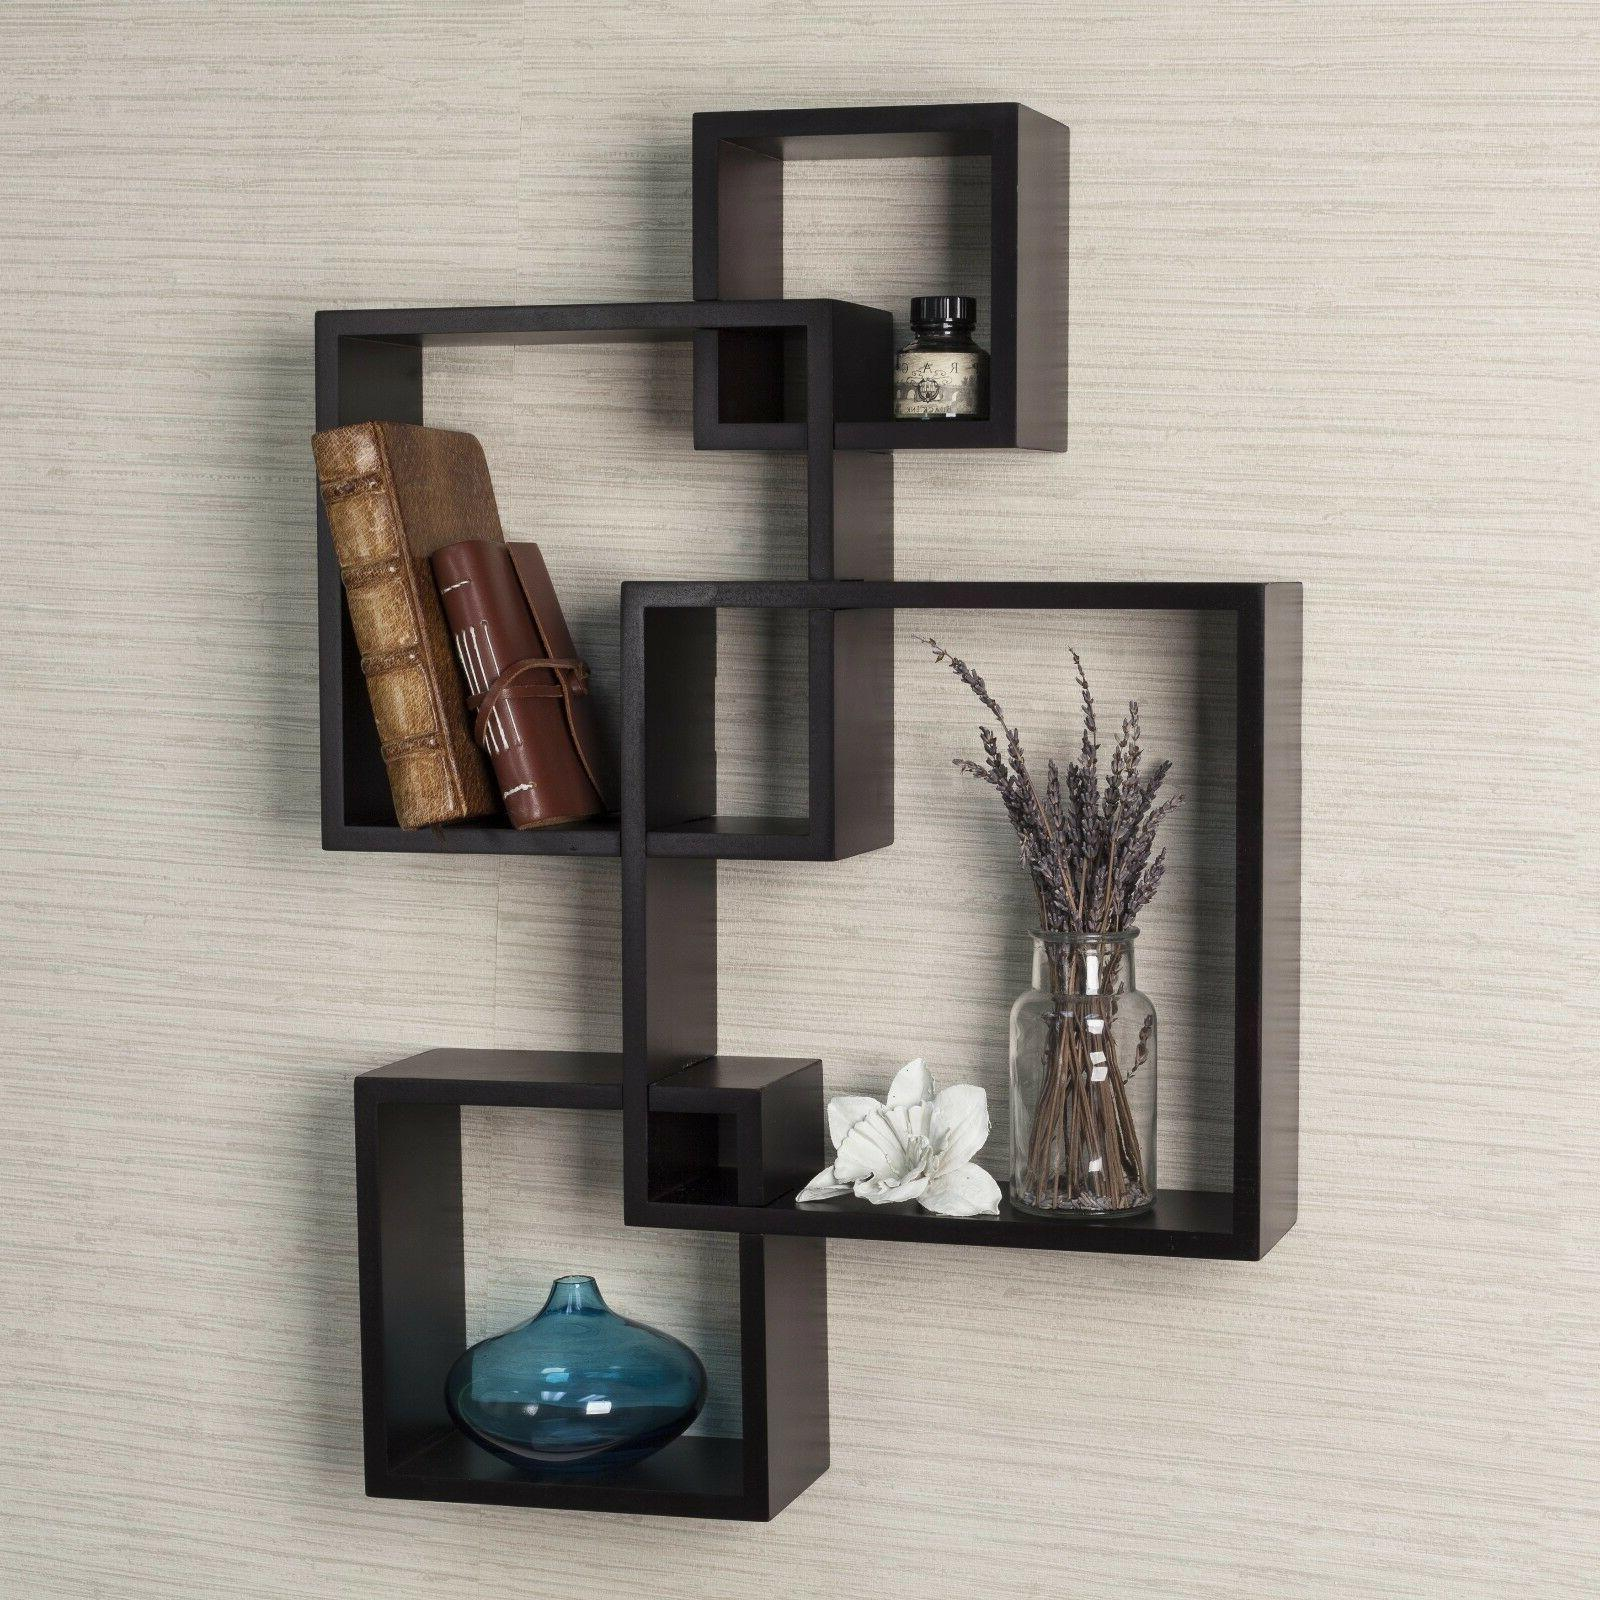 Wall Shelves Floating Intersecting Cubes Book Shelf Espresso